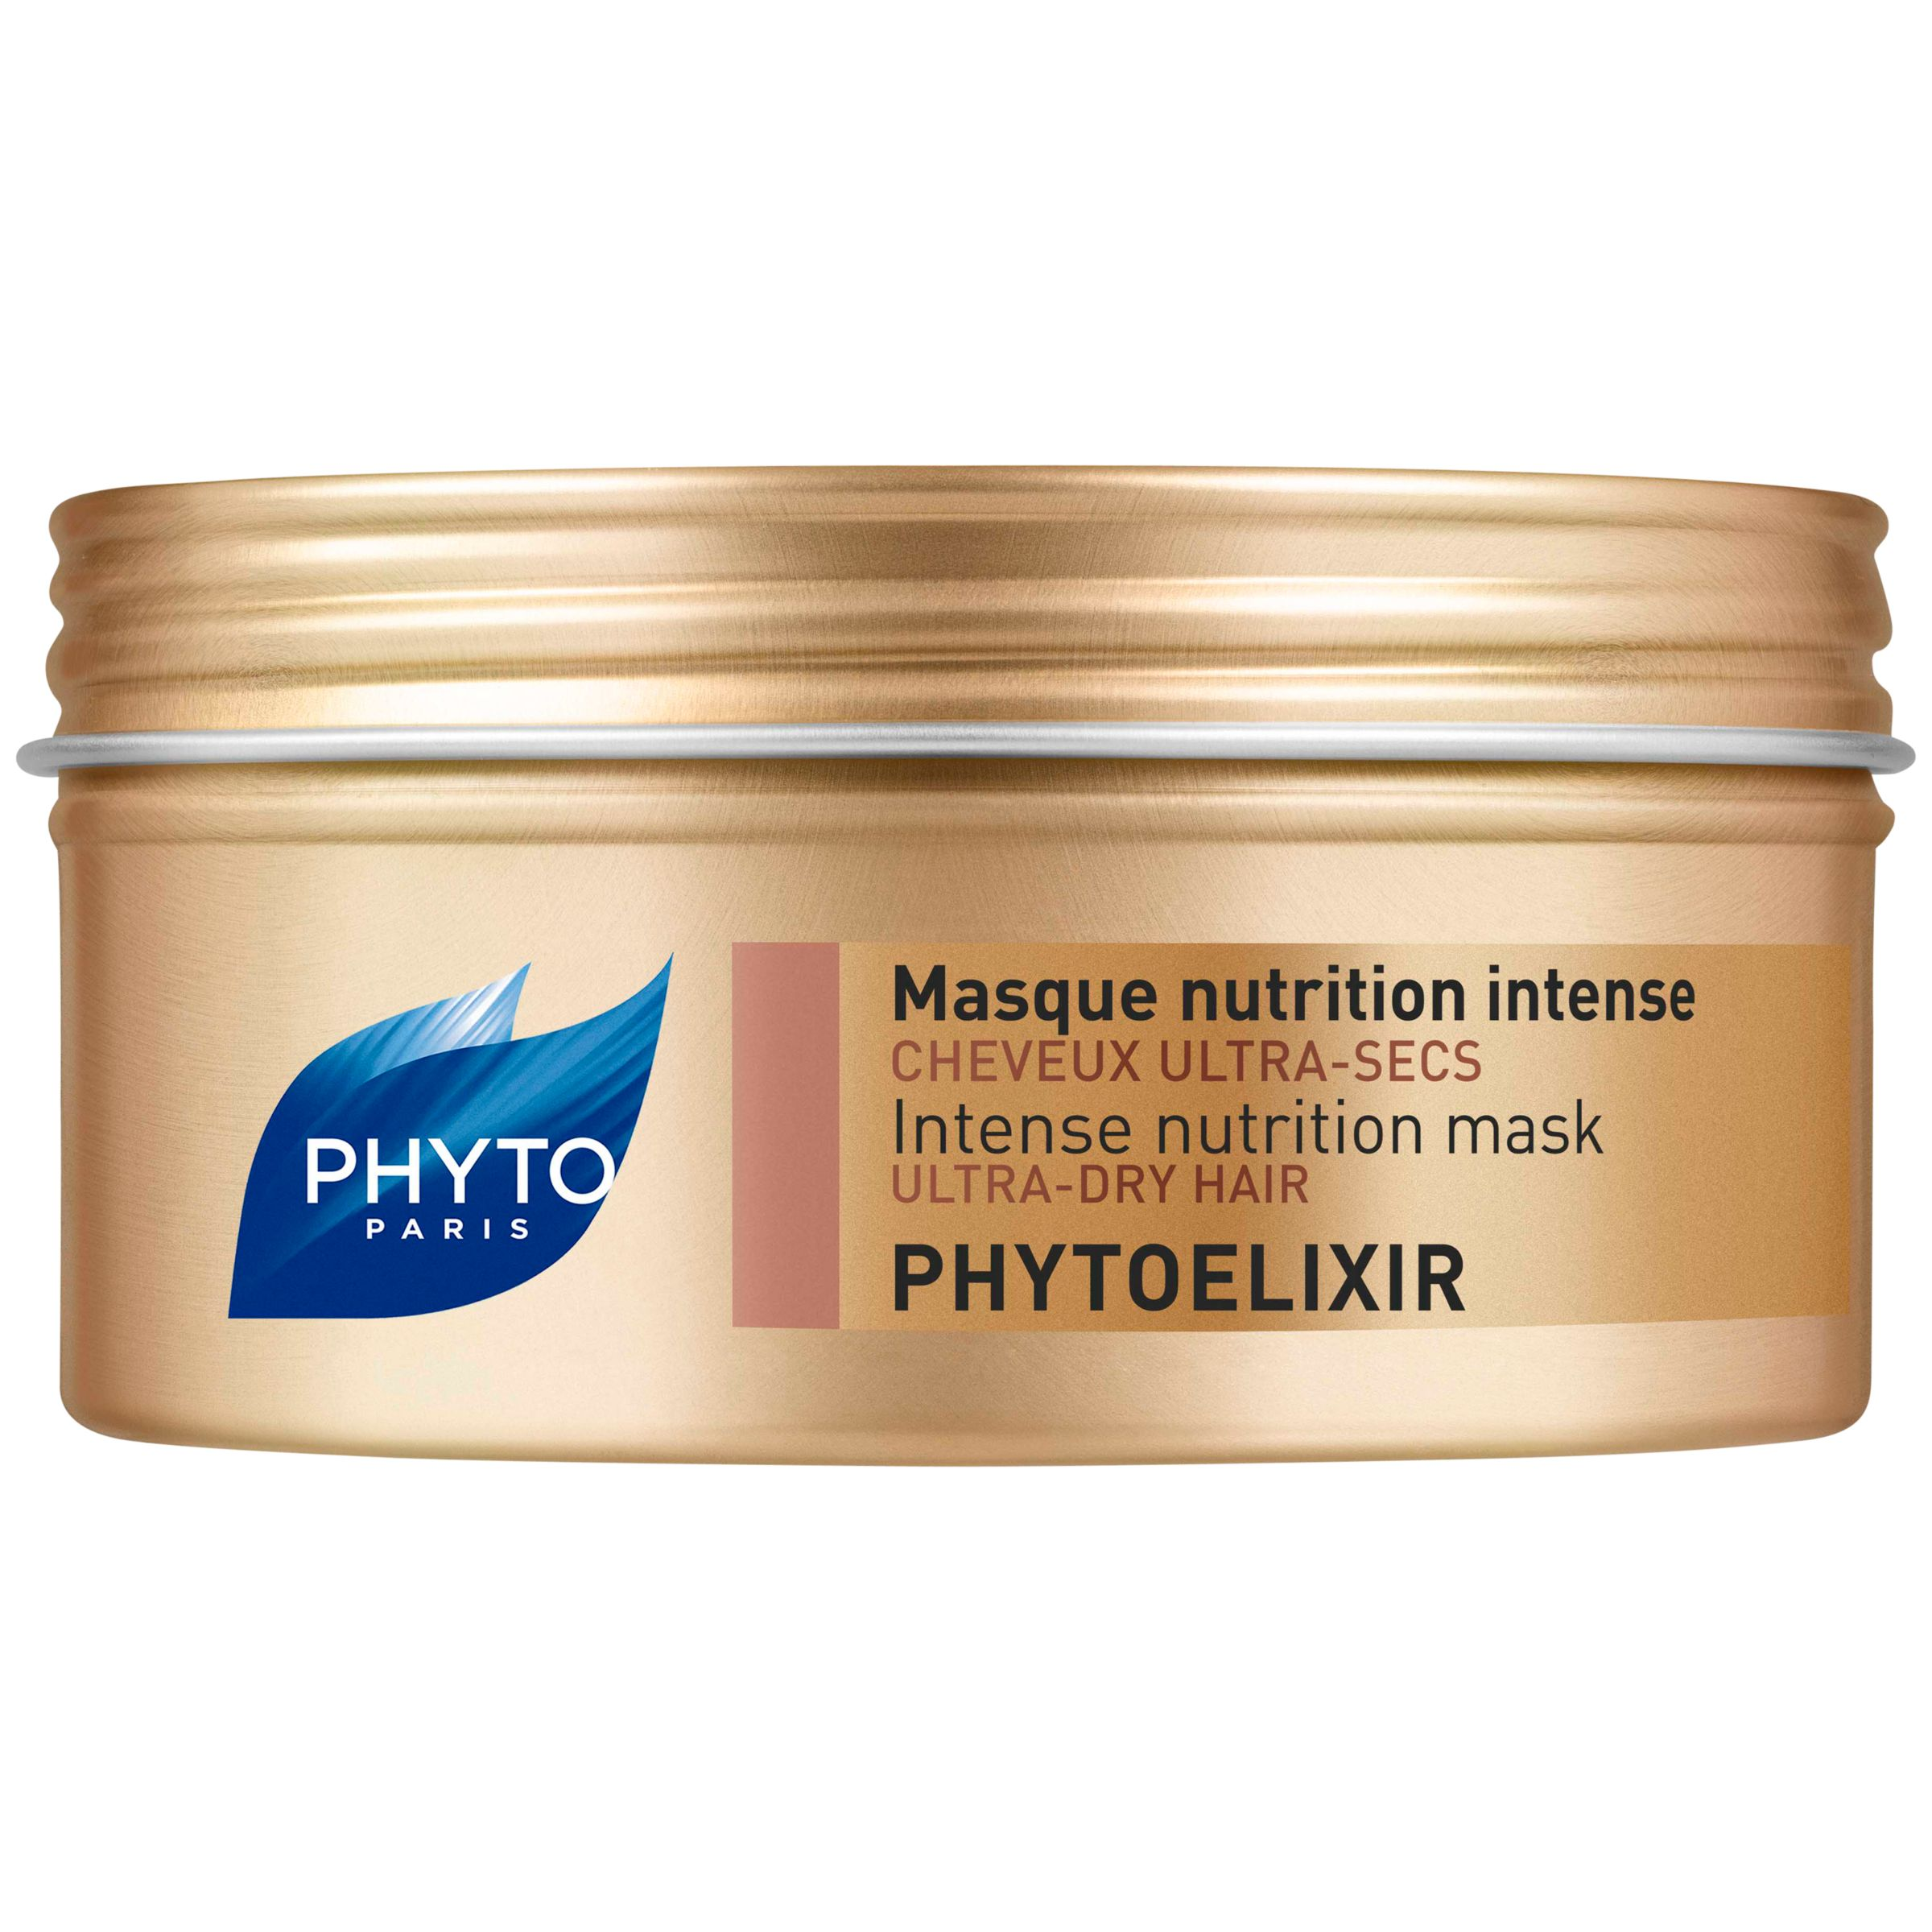 Phyto Phyto Phytoelixir Intense Nutrition Mask, 200ml